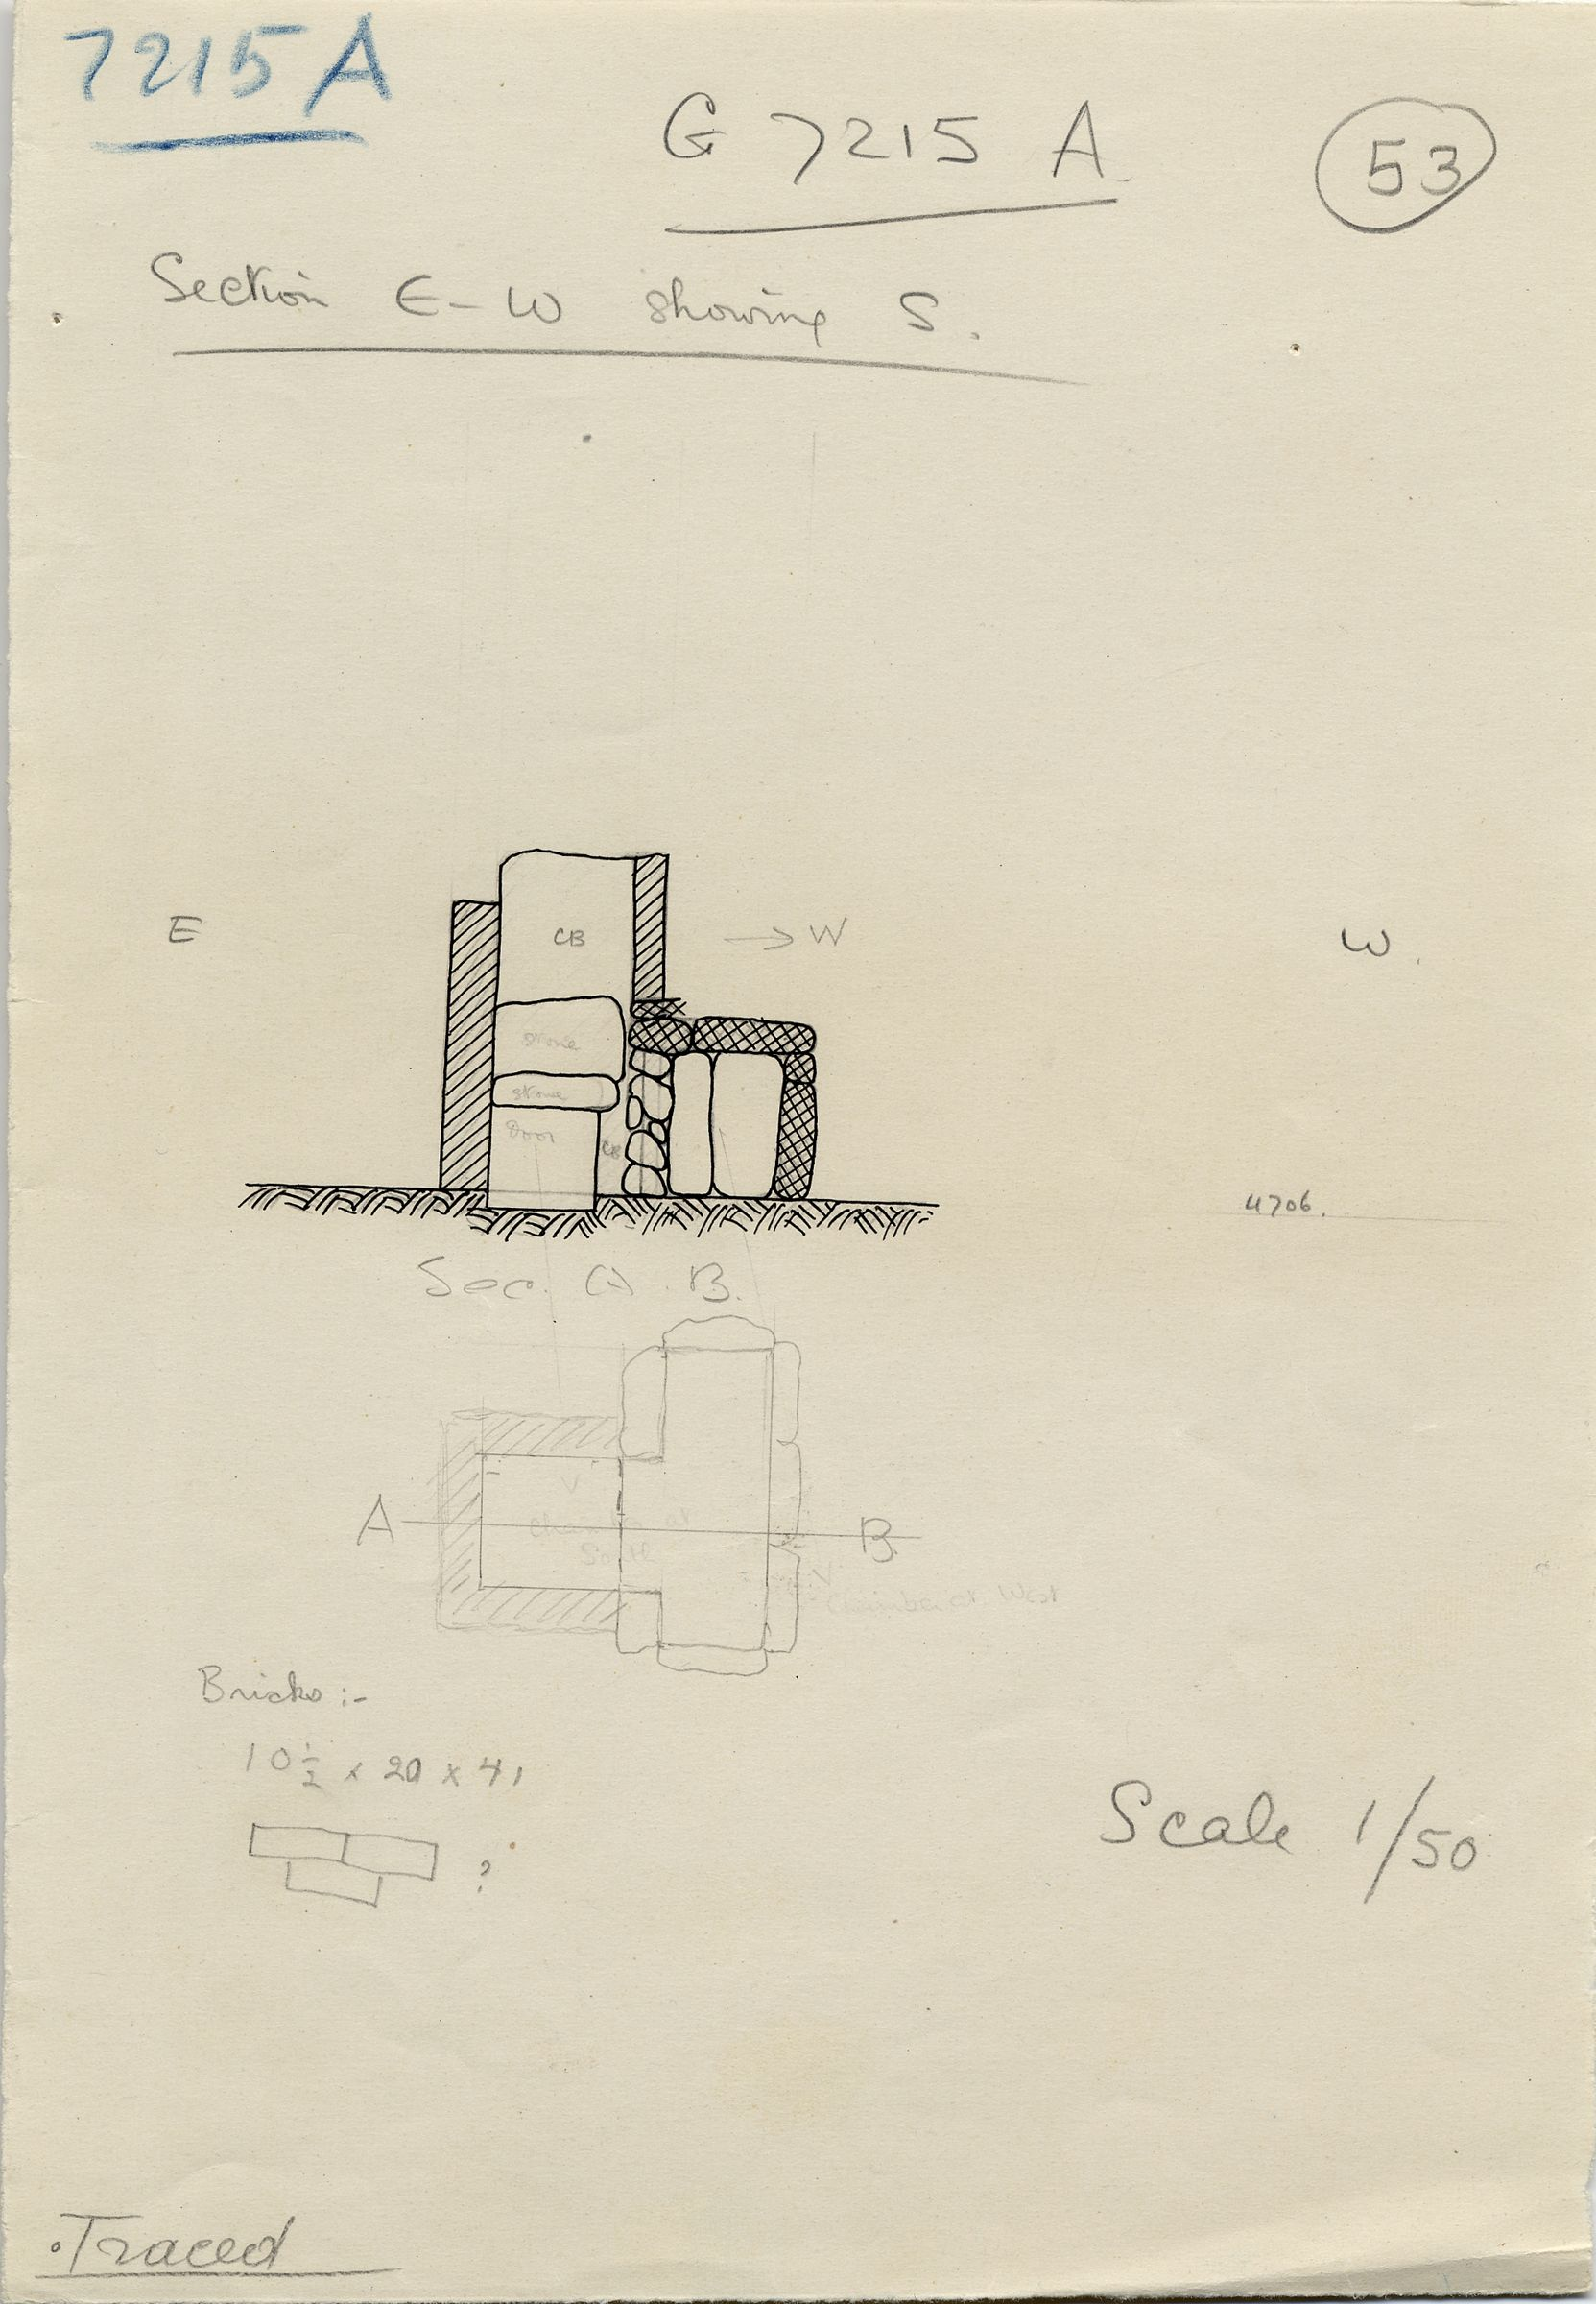 Maps and plans: G 7215, Shaft A